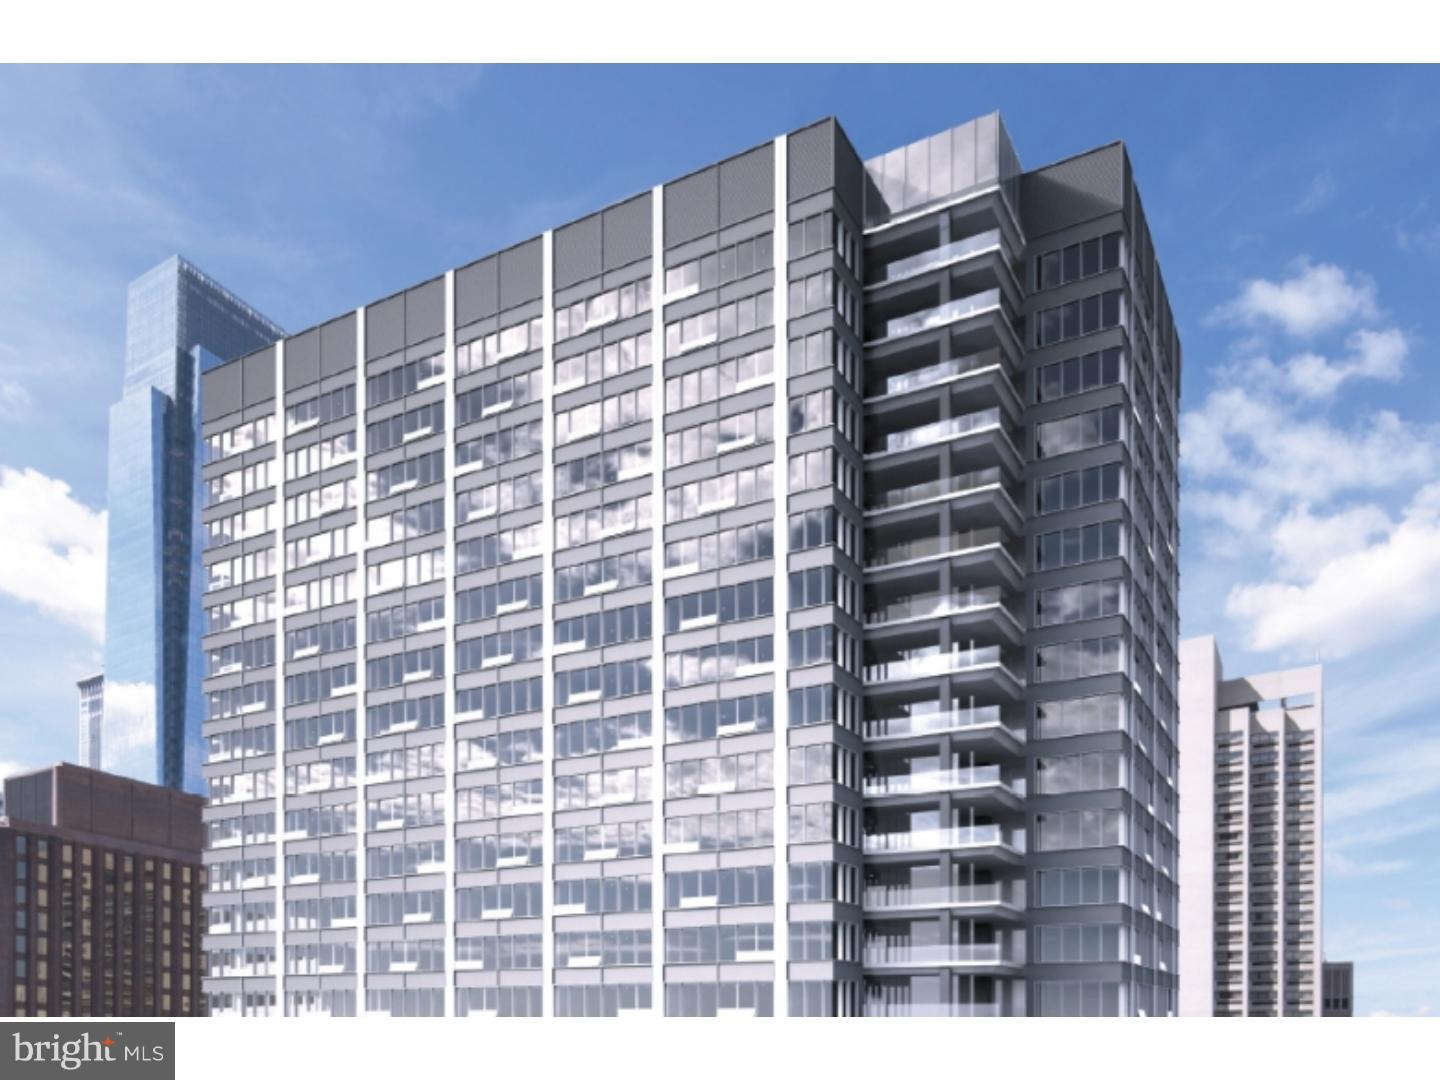 FOR A LIMITED TIME:WAIVED APPLICATION AND AMENITY FEE & $1000 MOVE IN CREDIT !! LET the SUNSETS be your permanent back drop!!!!!!!!! This ONE BEDROOM apartment, at FRANKLIN TOWER, located at 16TH and RACE STREET is a must see!!! All open and spacious living and dining area. Kitchen with STAINLESS STEEL appliances, BREAKFAST BAR, and CUSTOM cabinetry. Bedroom is SPACIOUS and GRACIOUS, and the all tile EUROPEAN style bathroom is fantastic. There is nothing like FRANKLIN TOWER apartments, in all of Philadelphia!!! With amenities on EVERY FLOOR, PELOTON ROOMS, Yoga studios, Screening Rooms, Game Rooms, Lounges, and GYMS, as well as the ROOF TOP LOUNGE , with flat screen, grills, and FIREPLACE. A BASKETBALL COURT with STADIUM SEATING, and PET SPA! GARAGE PARKING available for additional cost. Photo's are of model unit.